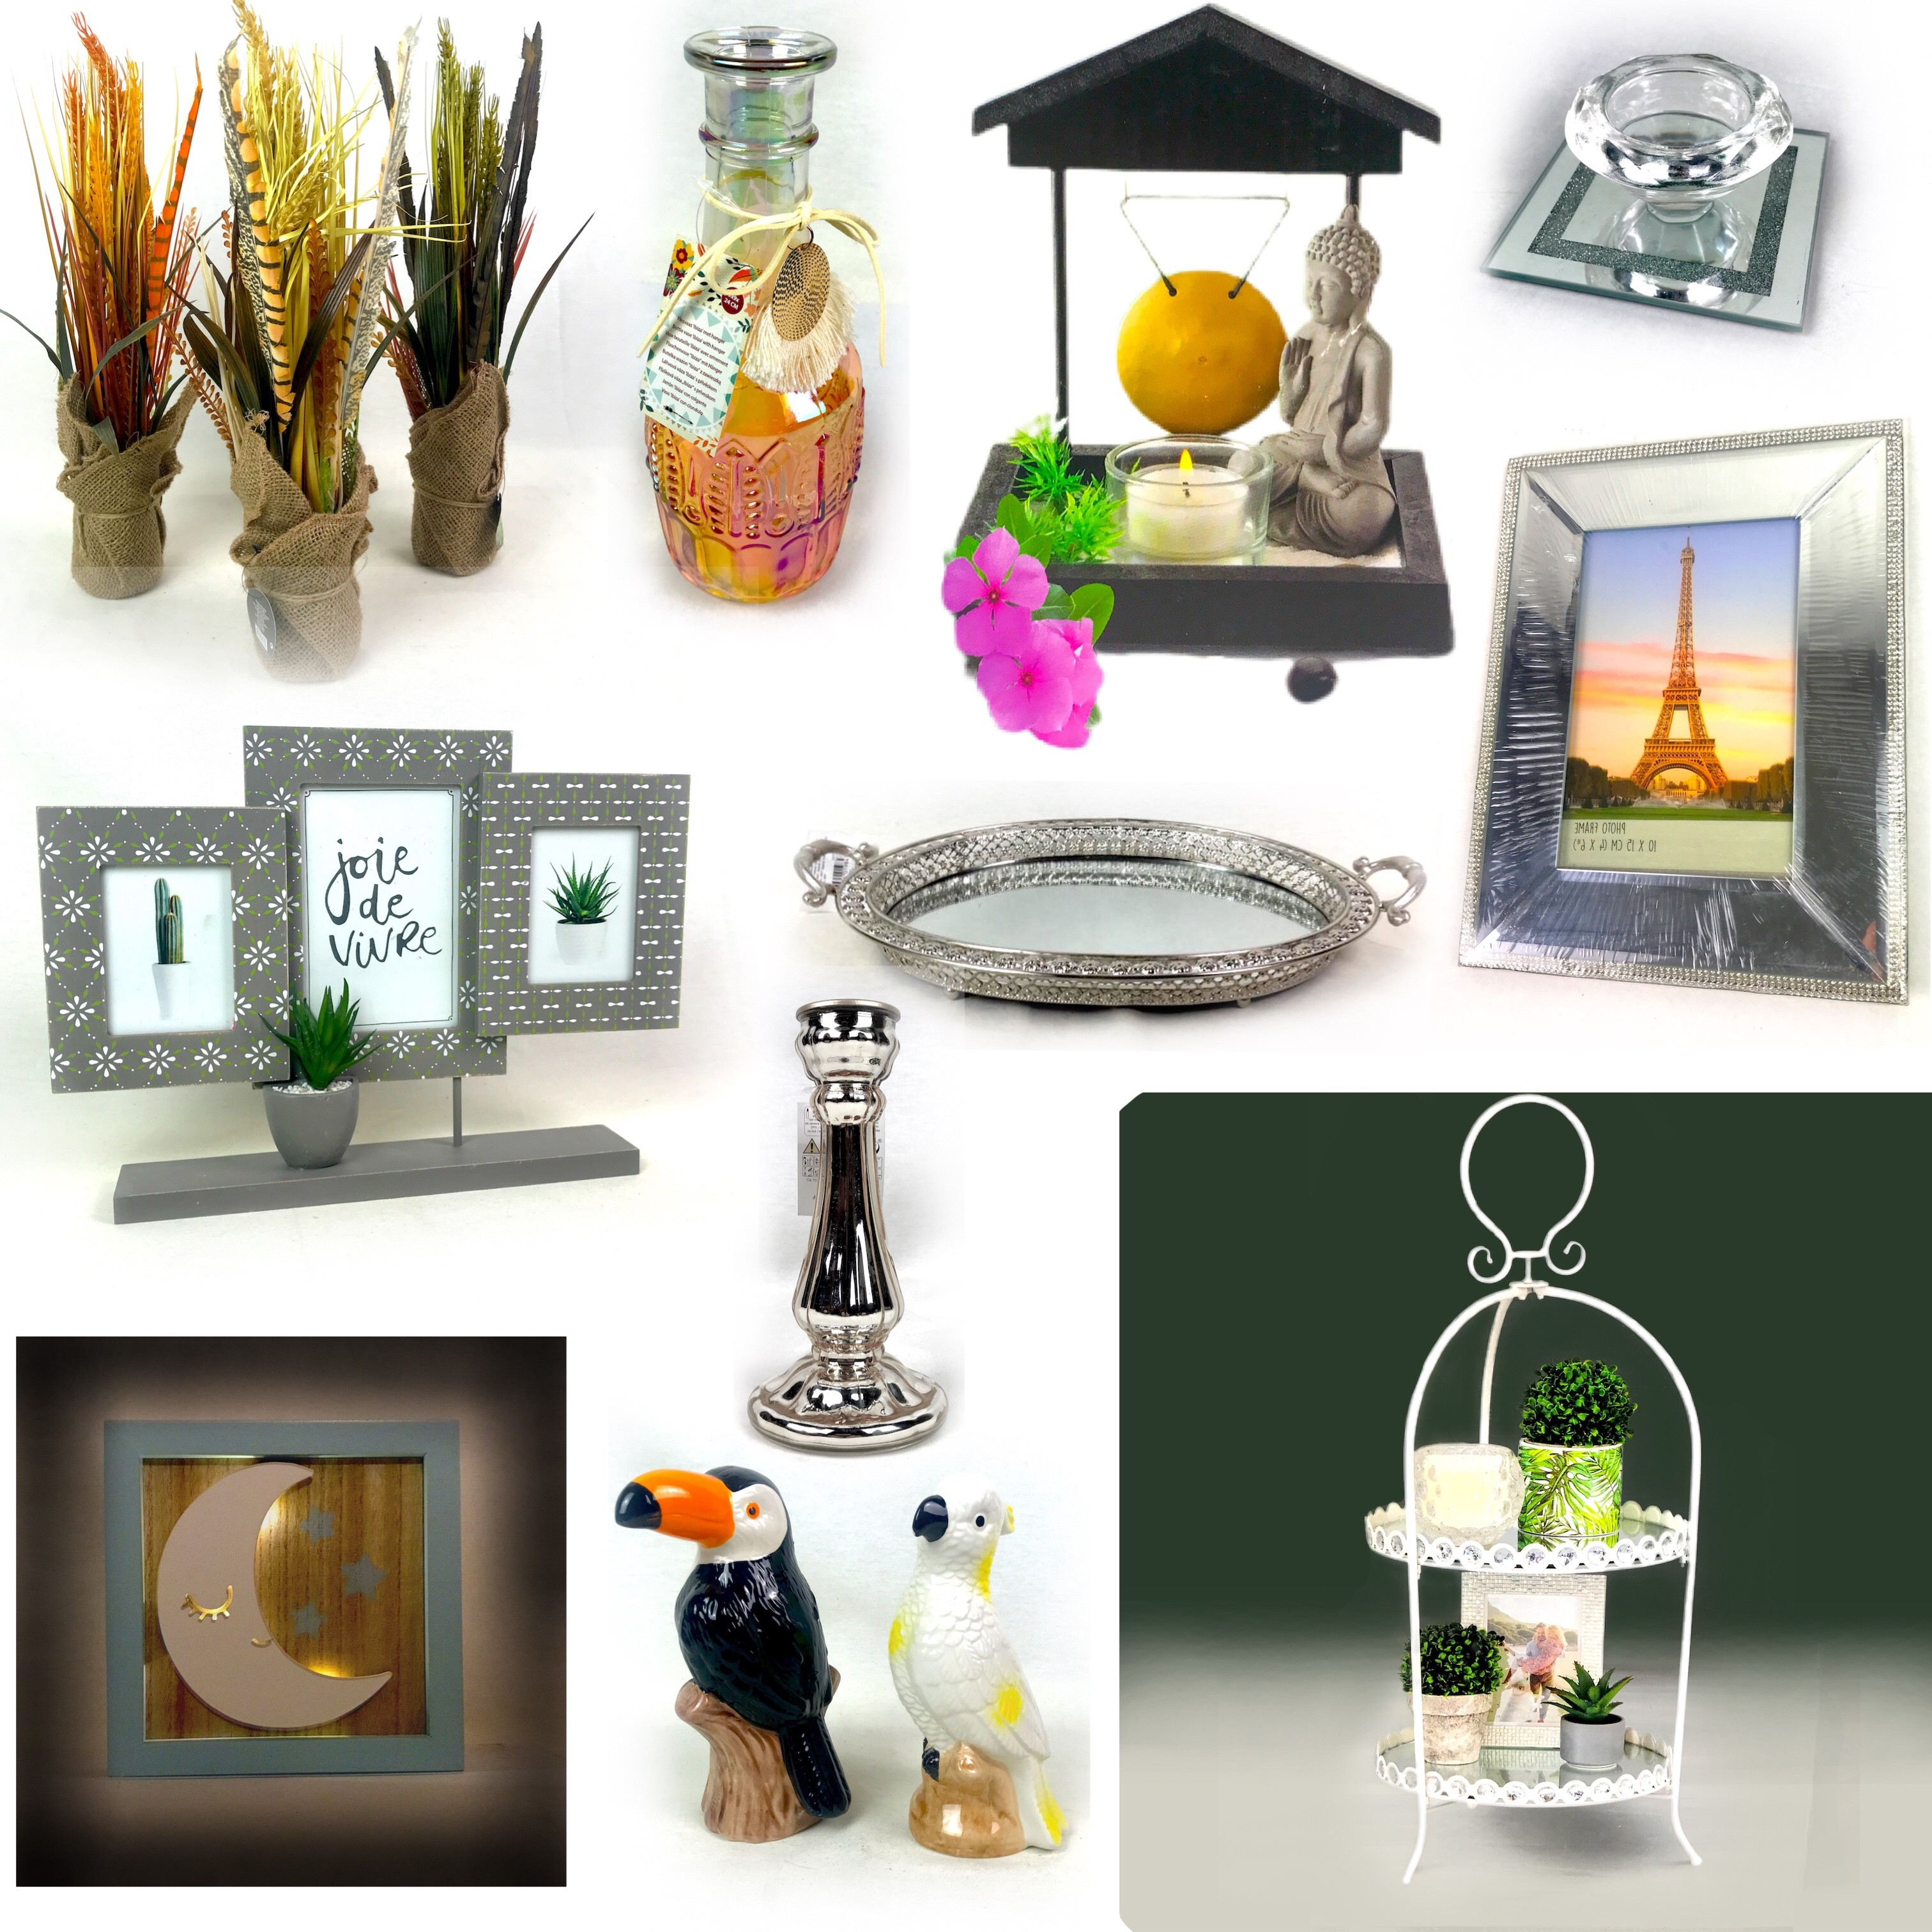 Decorative Glass, Tray, Vintage Mirror, Ceramics, Photo Frames, Flowers & More Est. Original Retail €6,784, Vilnius, LT